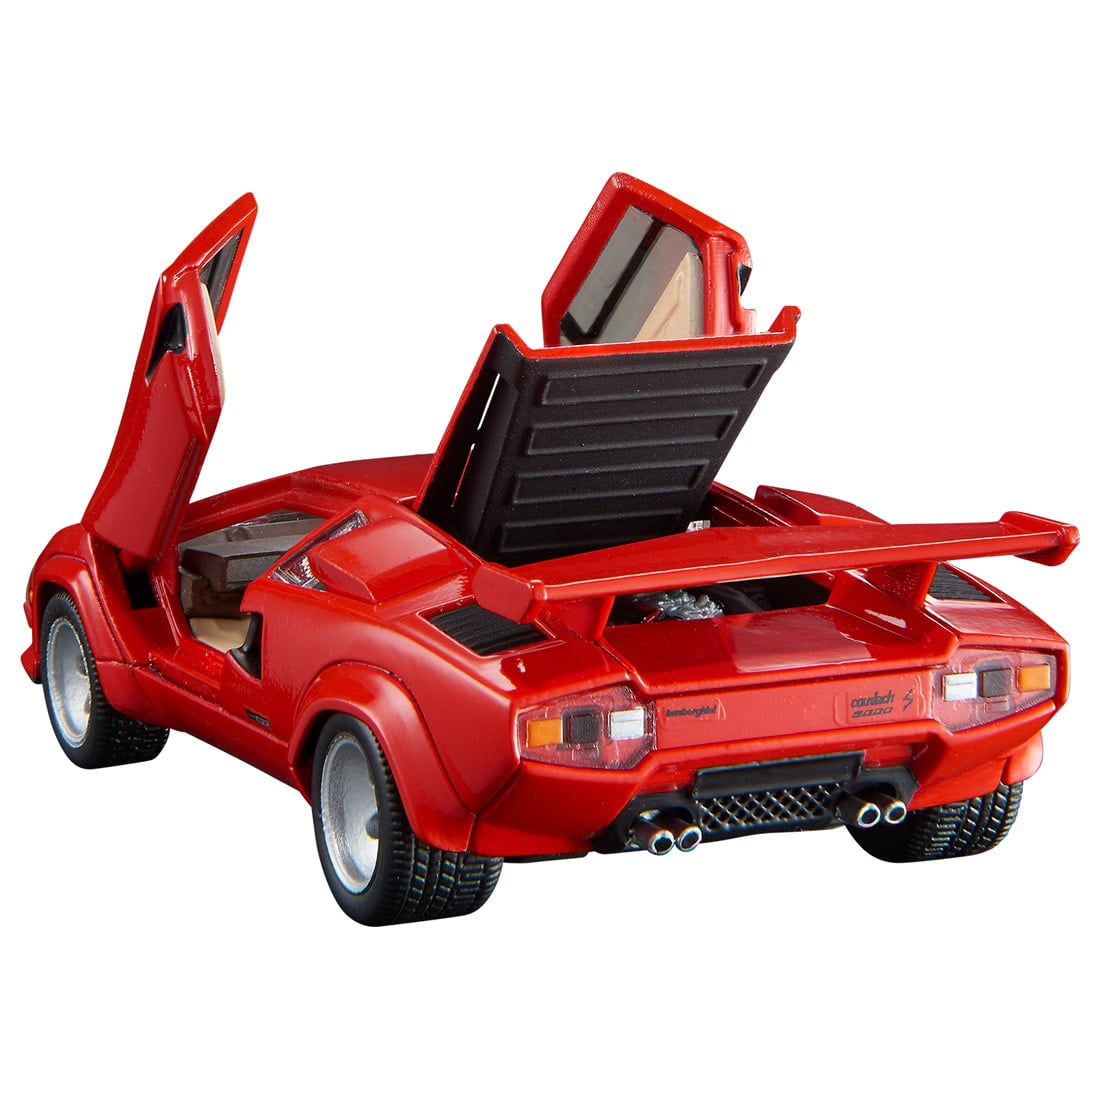 トミカプレミアムRS Lamborghini Countach LP 500 S